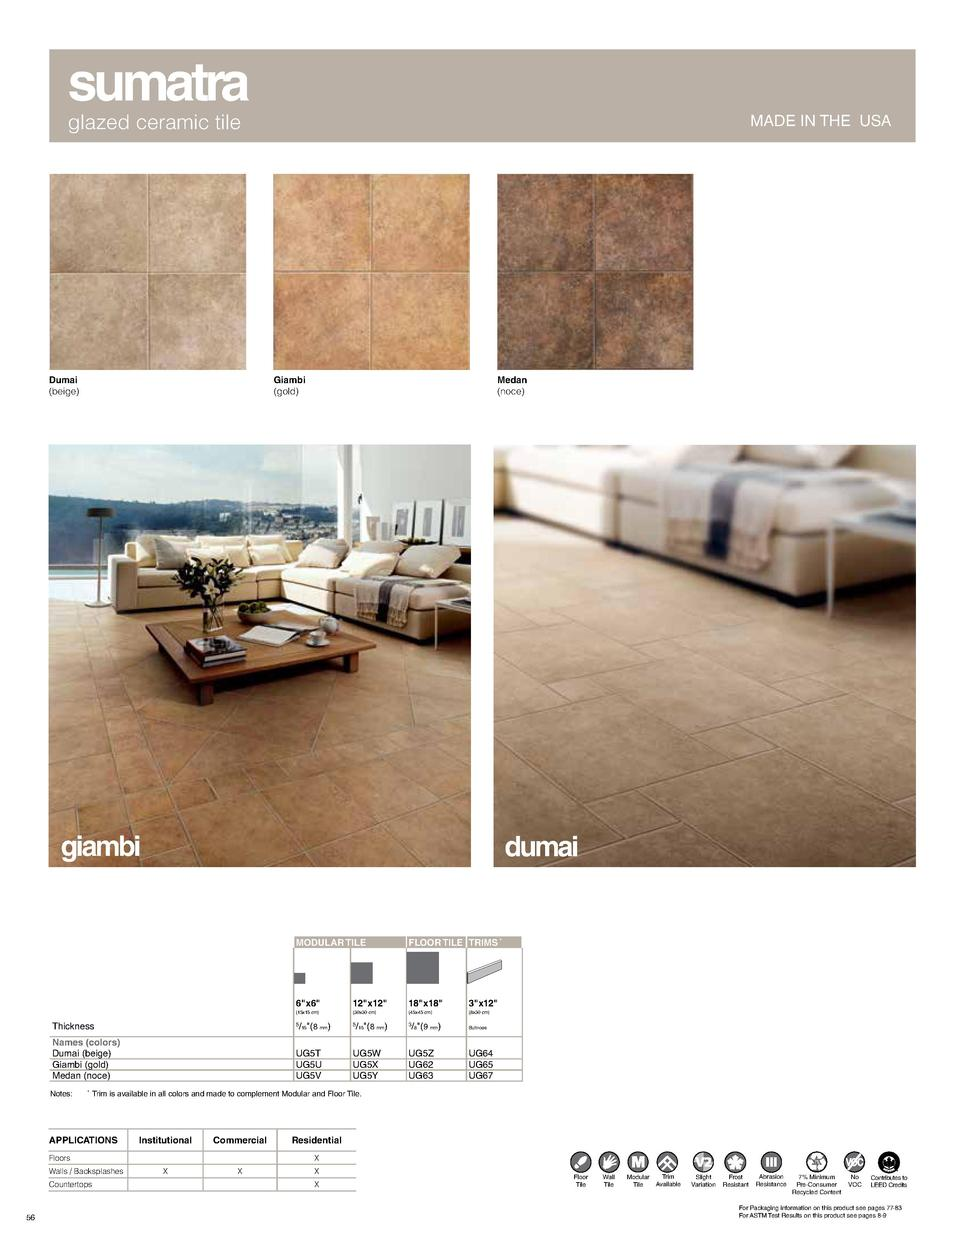 MADE IN THE USA  sumatra glazed ceramic tile  Dumai  beige   MADE IN THE USA  Giambi  gold   Medan  noce   giambi  dumai  ...